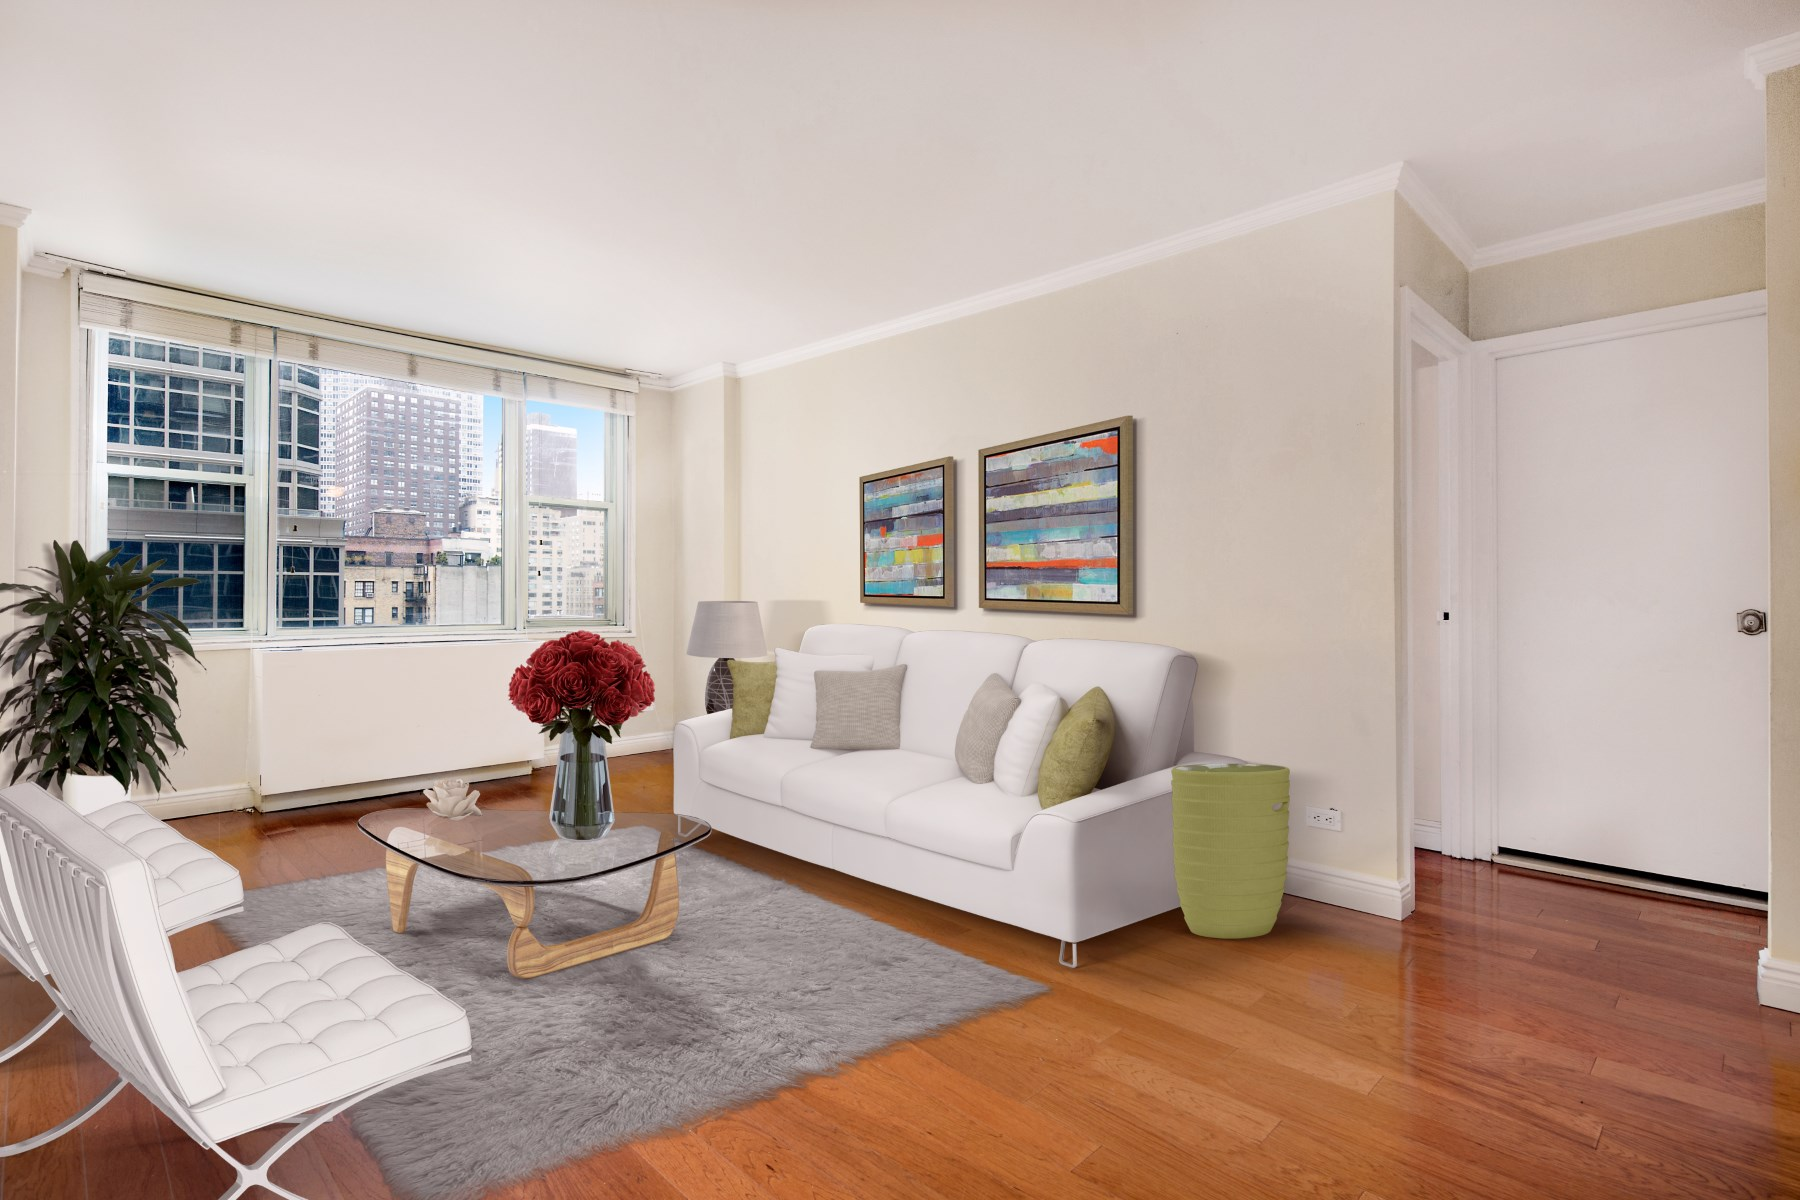 Co-op for Sale at 245 East 54th Street 245 East 54th Street Apt 9H Midtown East, New York, New York, 10022 United States